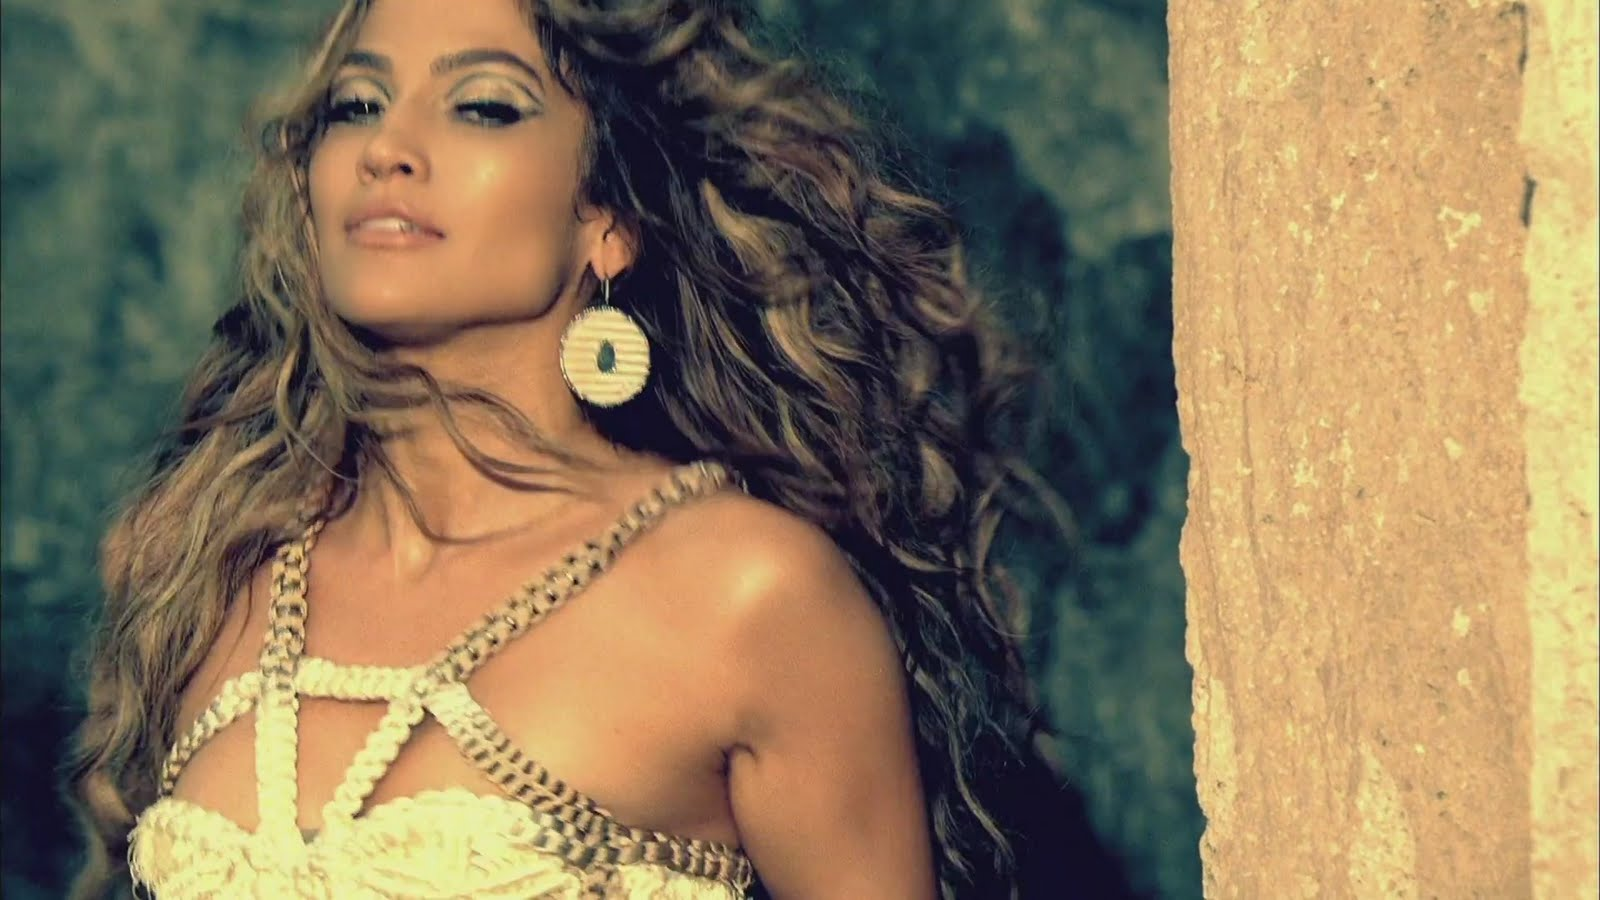 http://1.bp.blogspot.com/-ZhIb-o5DkdA/Td1FP6lZnAI/AAAAAAAAD7A/hyG9flkxLUw/s1600/Jennifer-Lopez-I-m-Into-You-Music-Video-jennifer-lopez-22115476-1920-1080.jpg